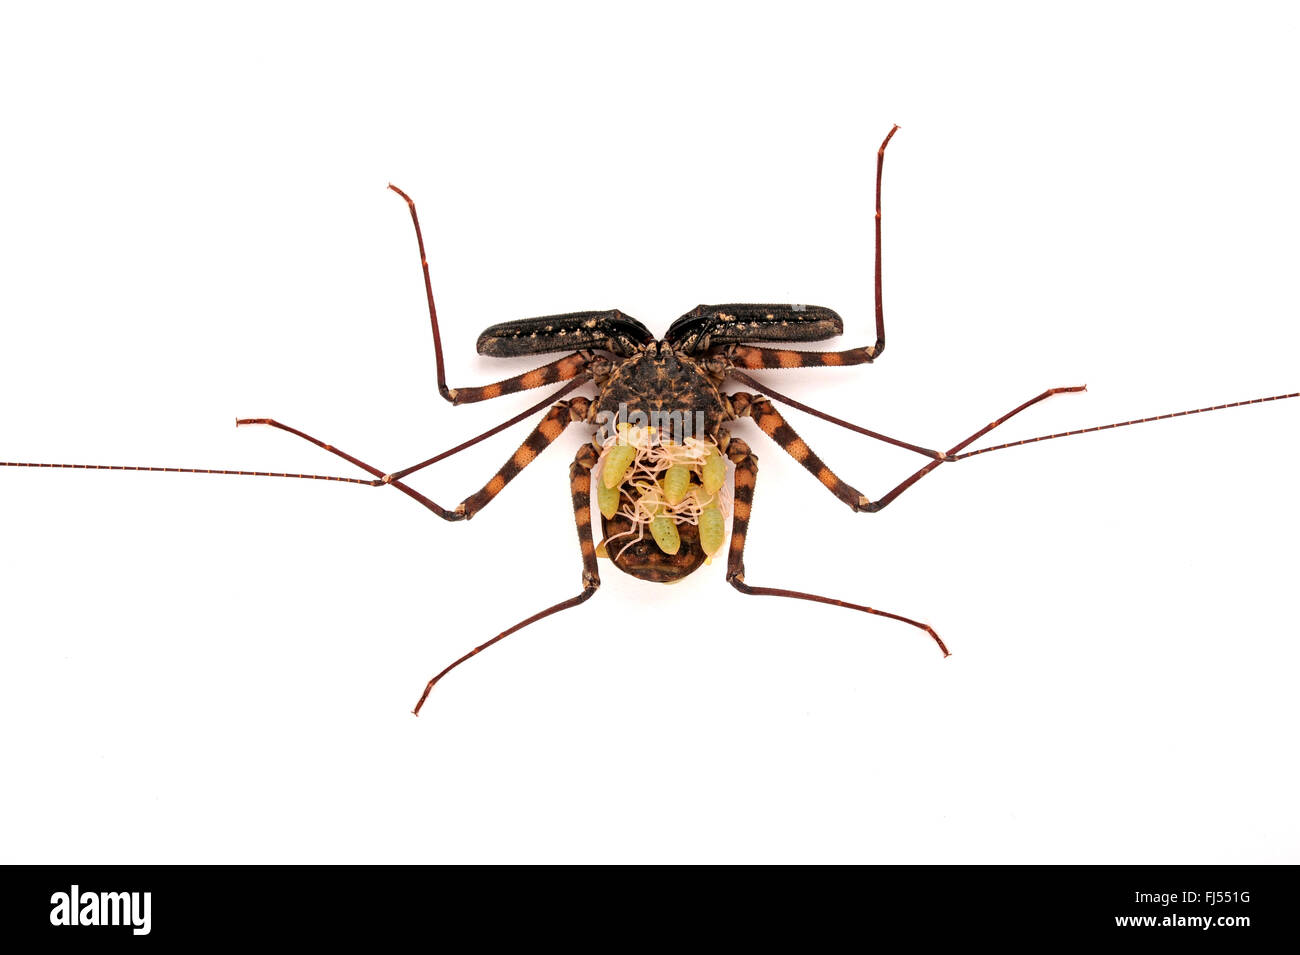 Whipscorpion, Tailless whipscorpion, Tailless whip scorpion (Damon diadema), with larvae on its back, cut-out Stock Photo